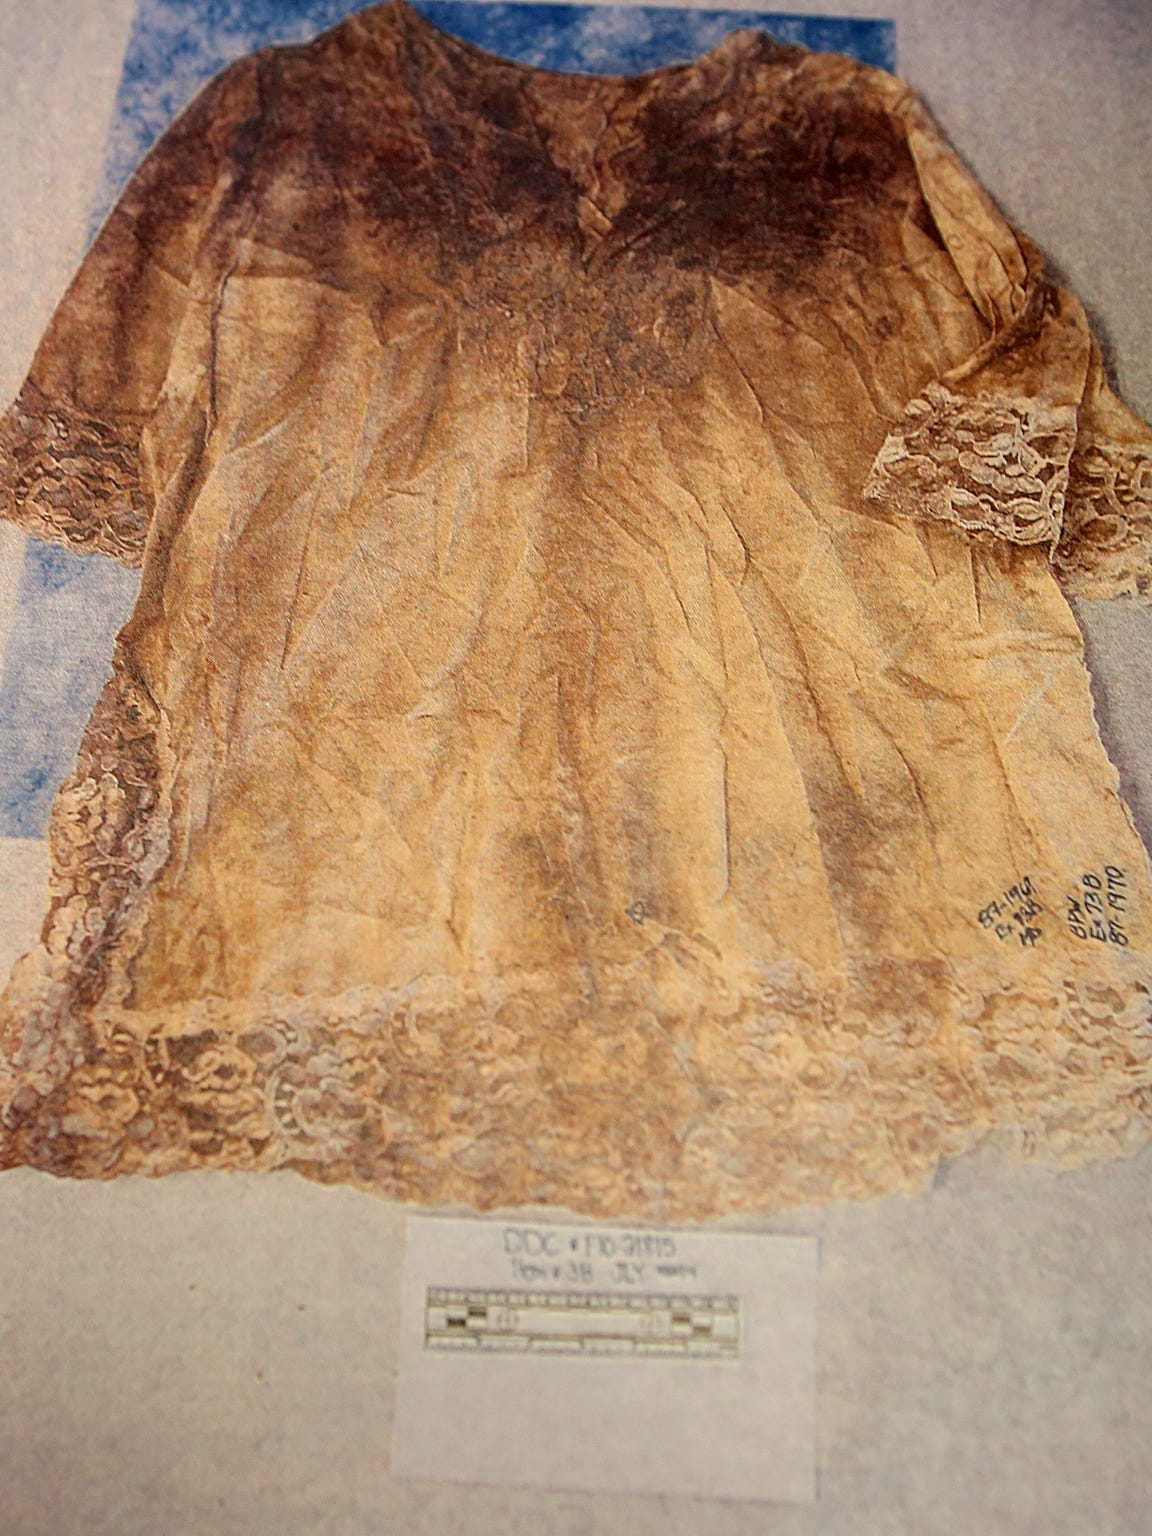 92e50a8a43 The nightgown Retha Welch wore when she was beaten